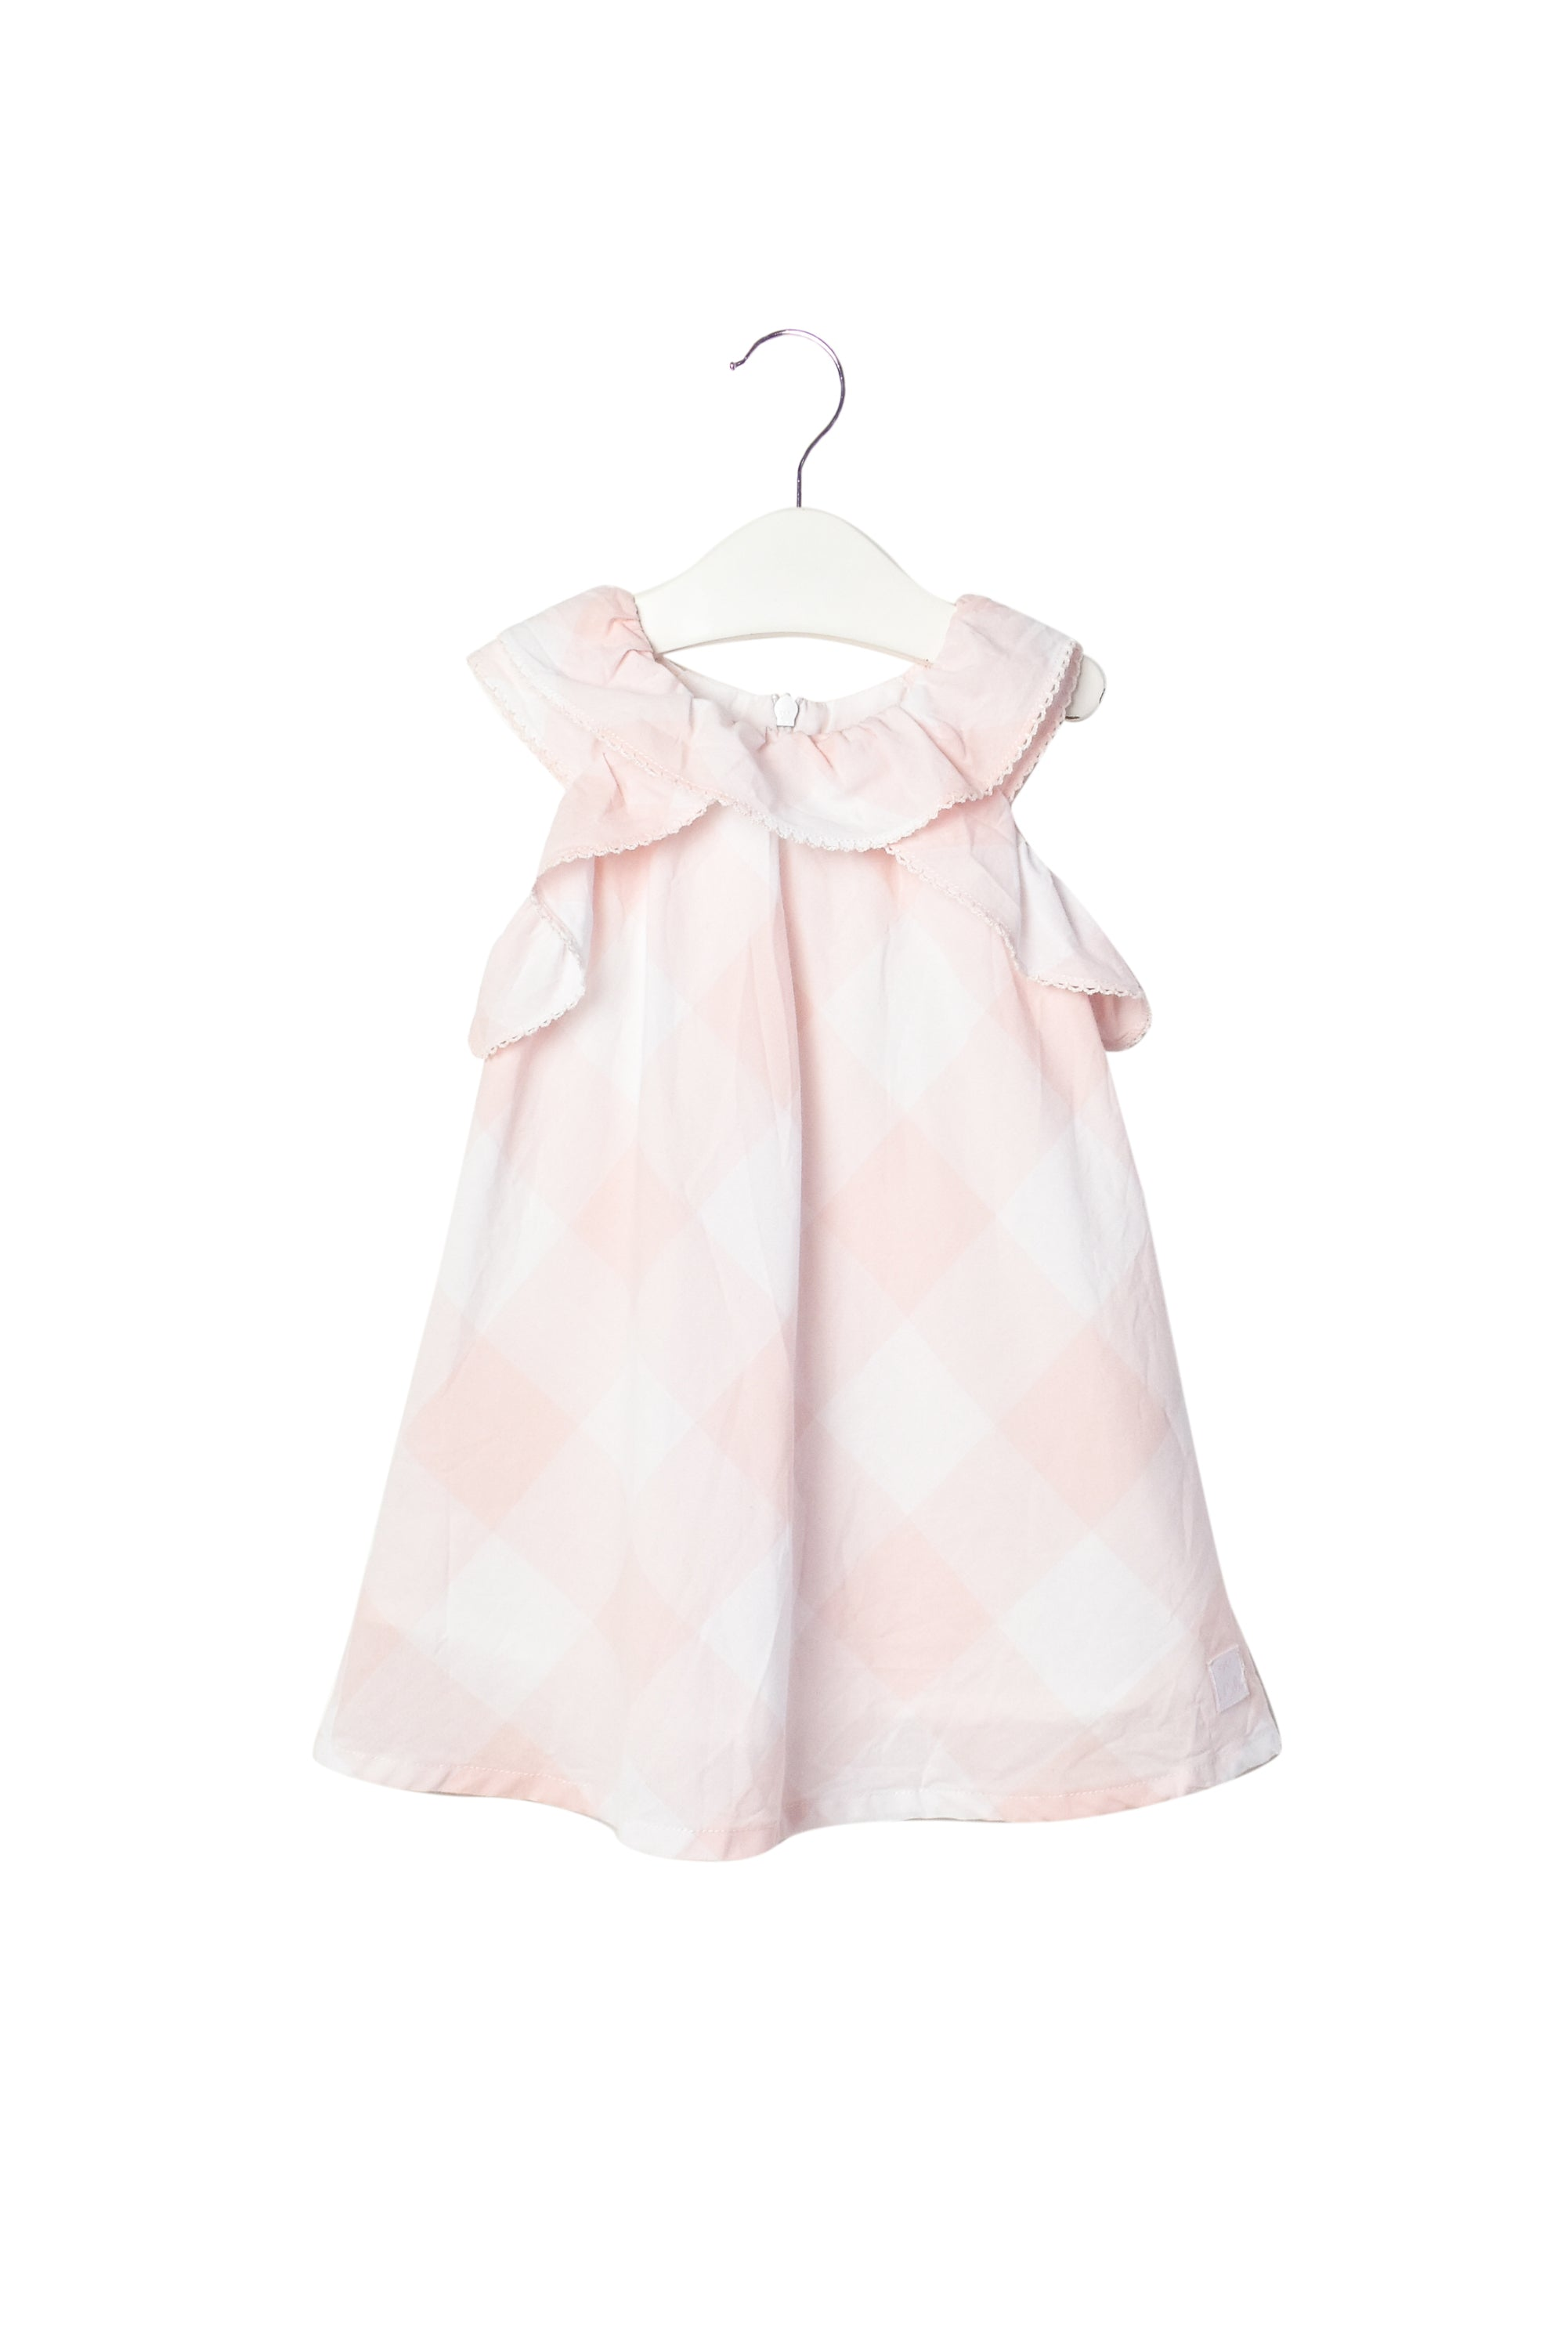 10006234 Lili Gaufrette Baby~Dress and Bloomer 18M, Lili Gaufrette Retykle | Online Baby & Kids Clothing Hong Kong